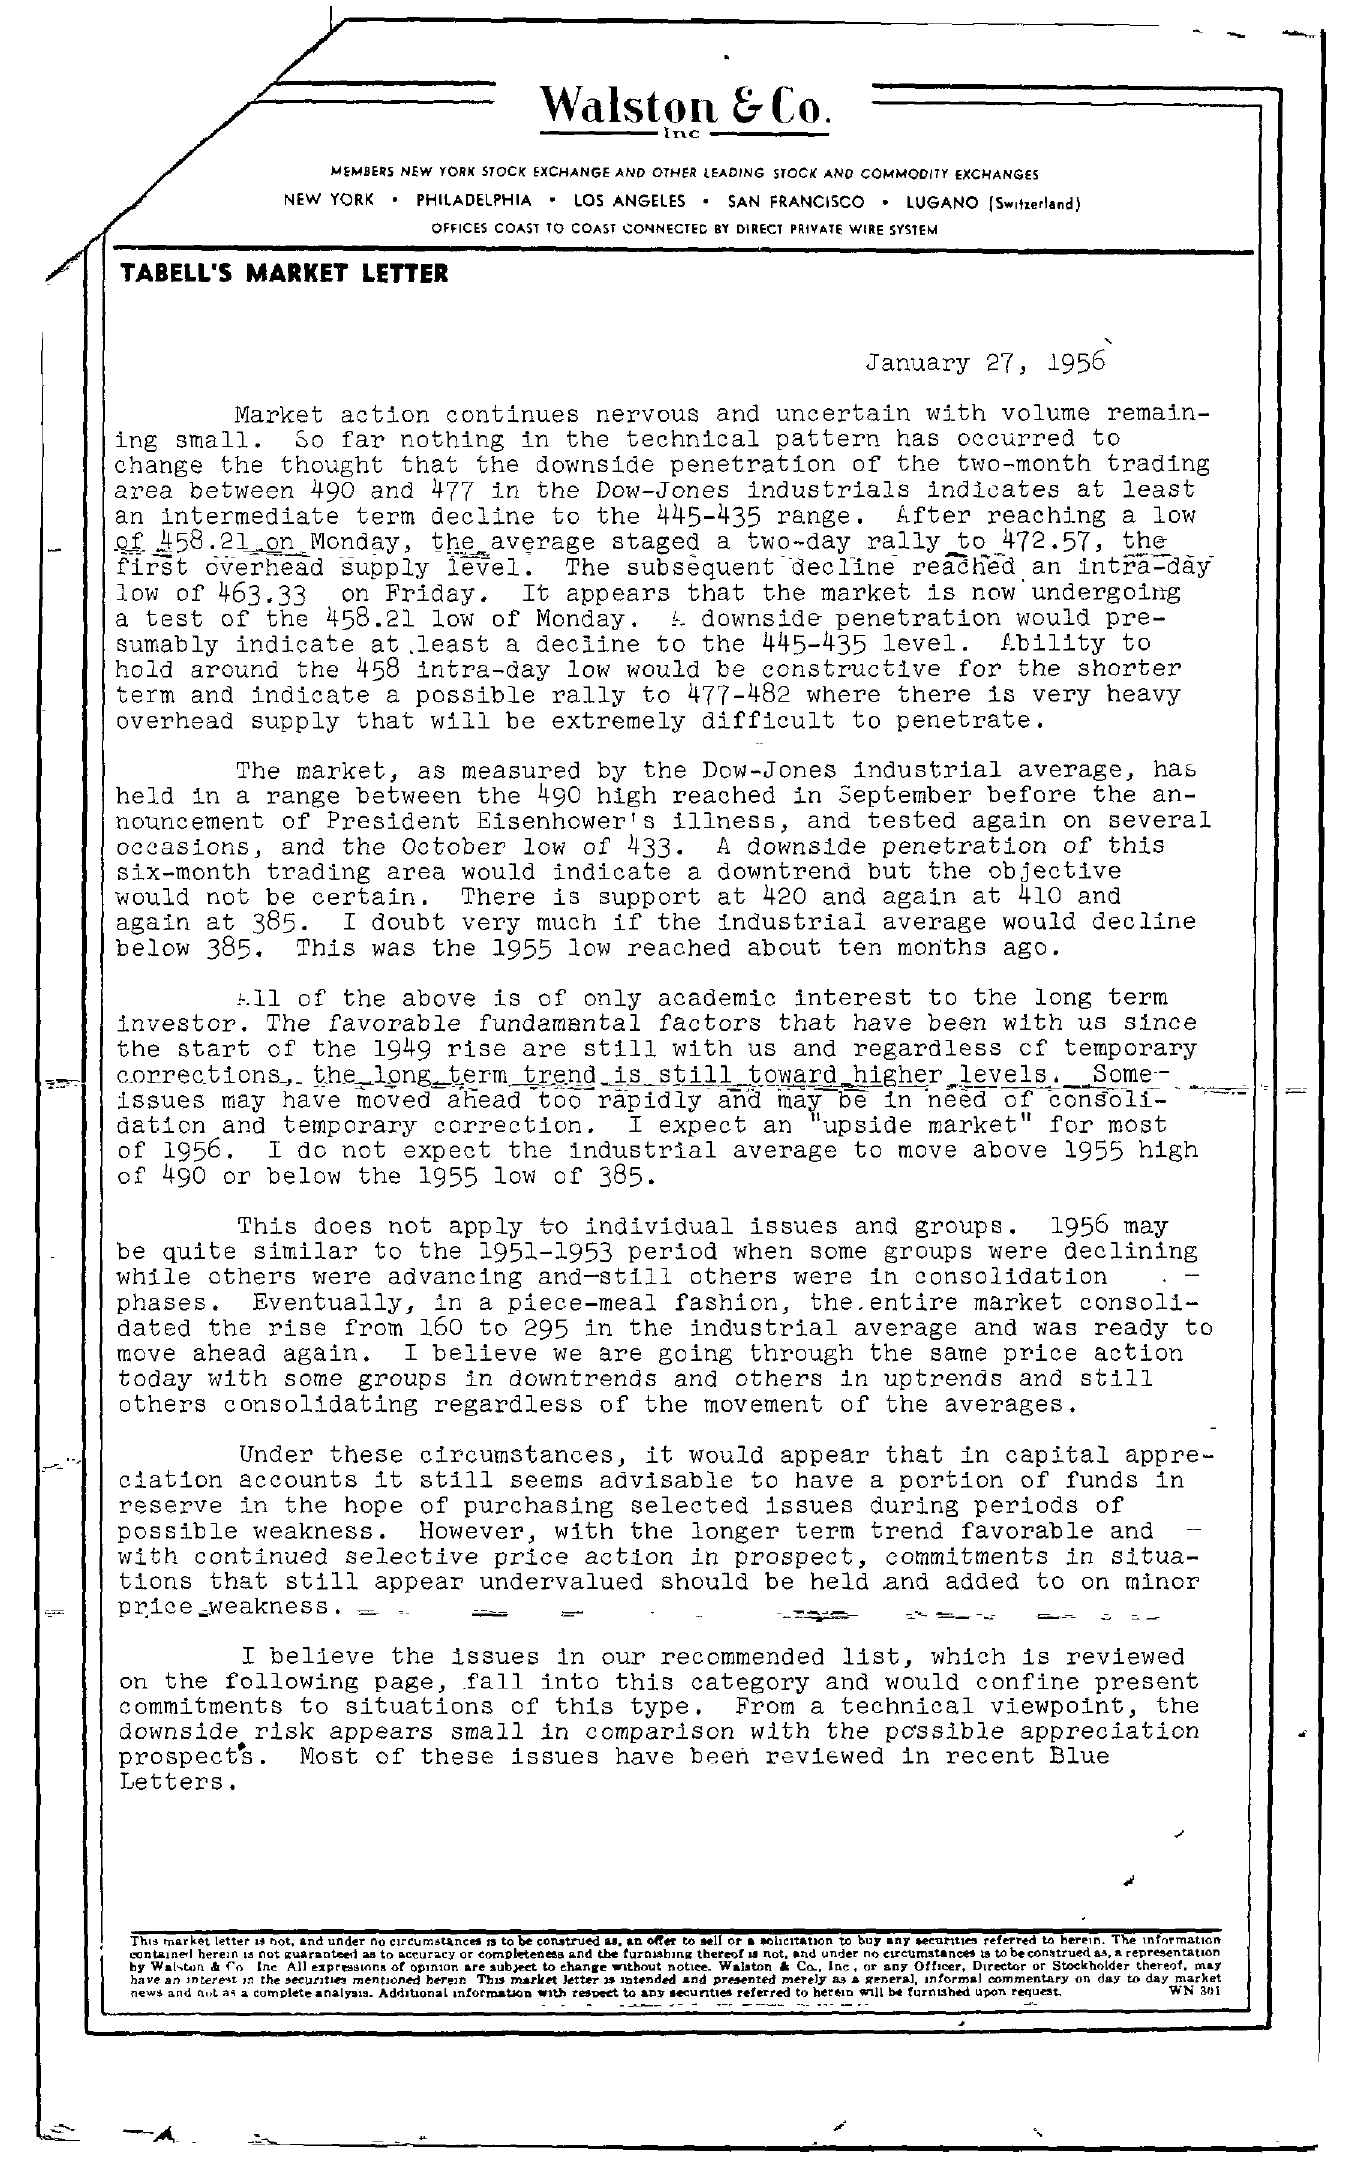 Tabell's Market Letter - January 27, 1956 page 1